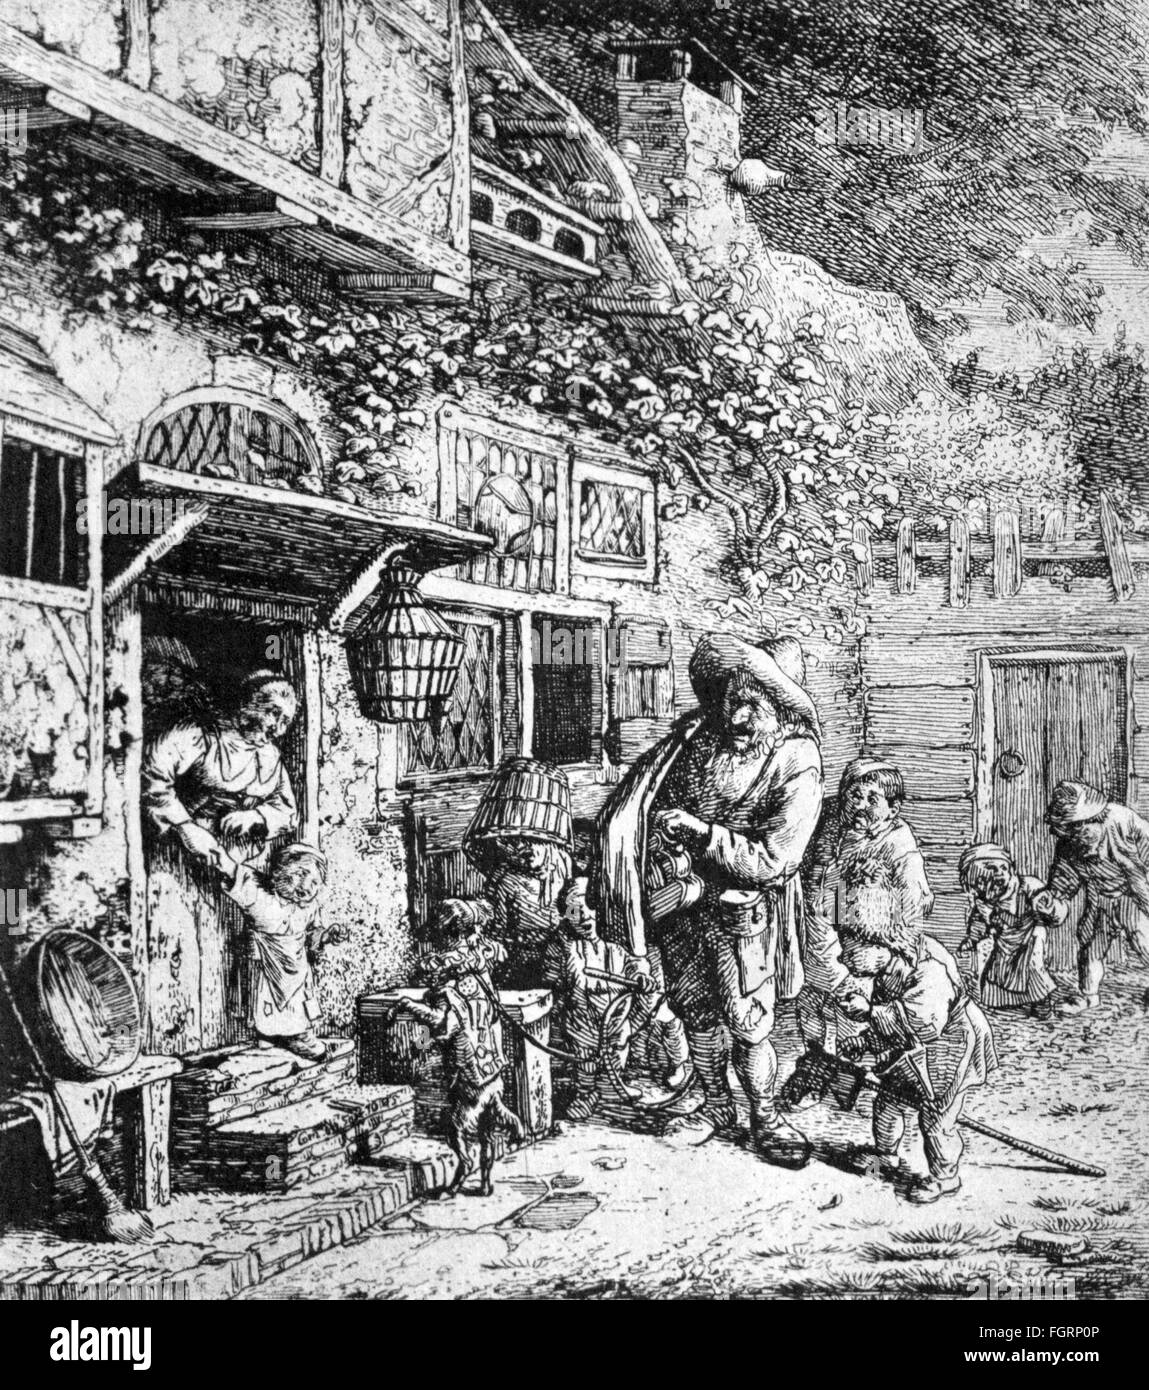 people, misery and hardship, beggars, 'The dancing Dog', copper engraving by Cornelis Dusart, Haarlem, 1685, - Stock Image